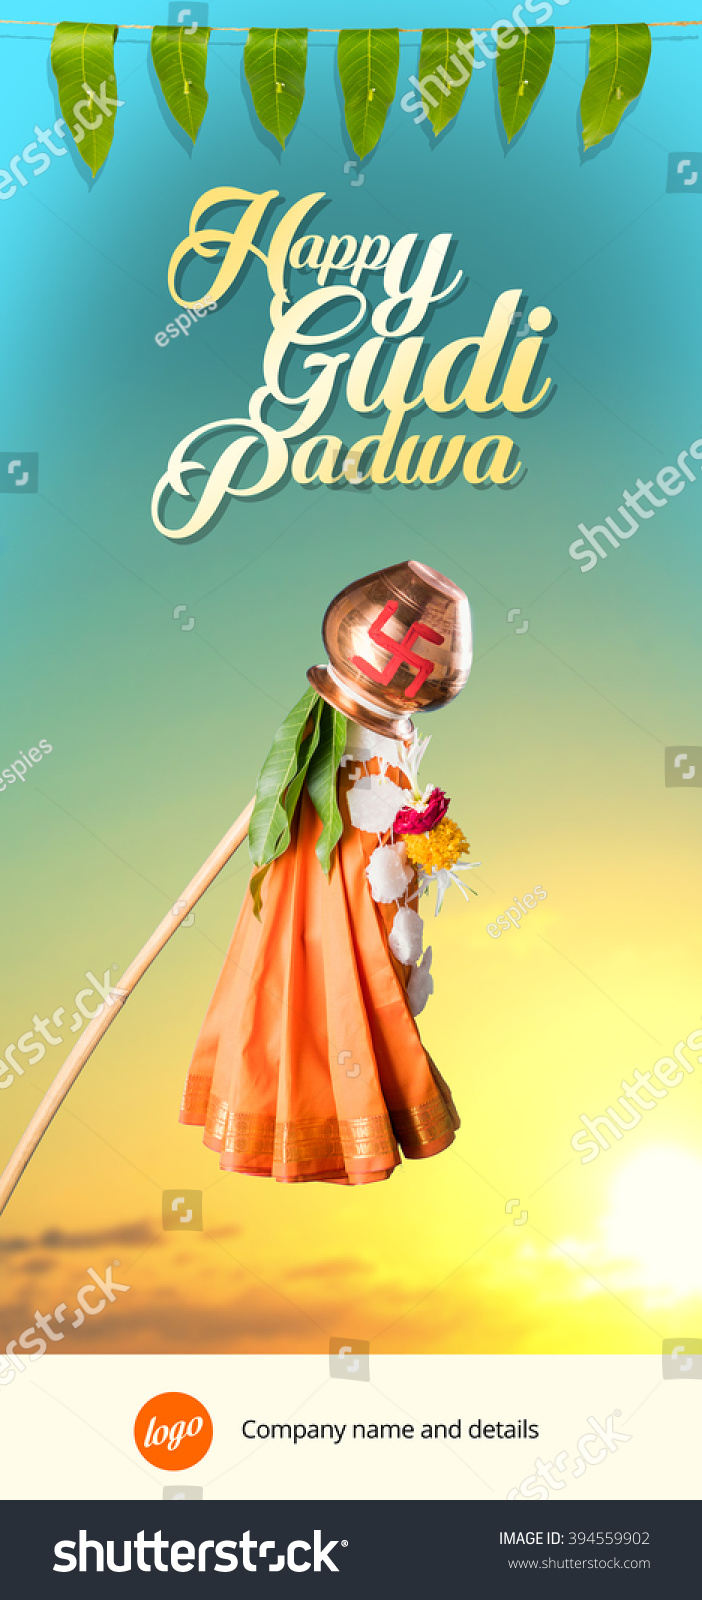 Royalty Free Happy Gudi Padwa Greeting Its A 394559902 Stock